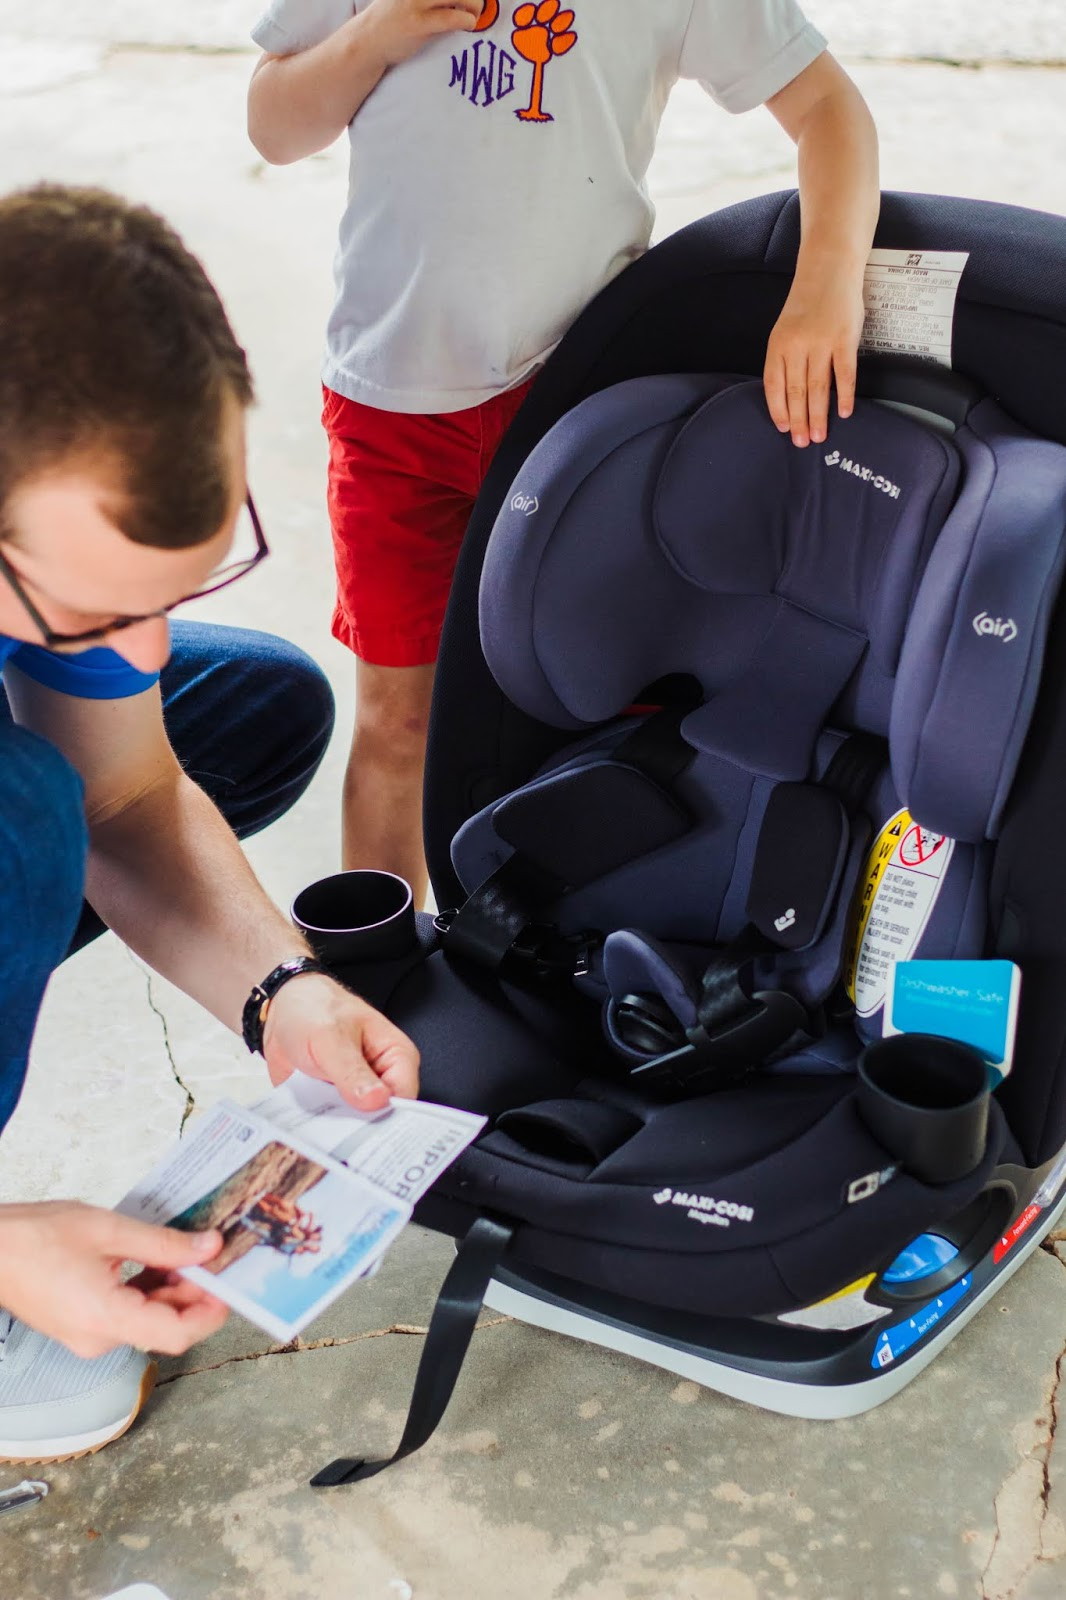 A Review of the Maxi-Cosi Magellan Convertible 5-in-1 Car Seat